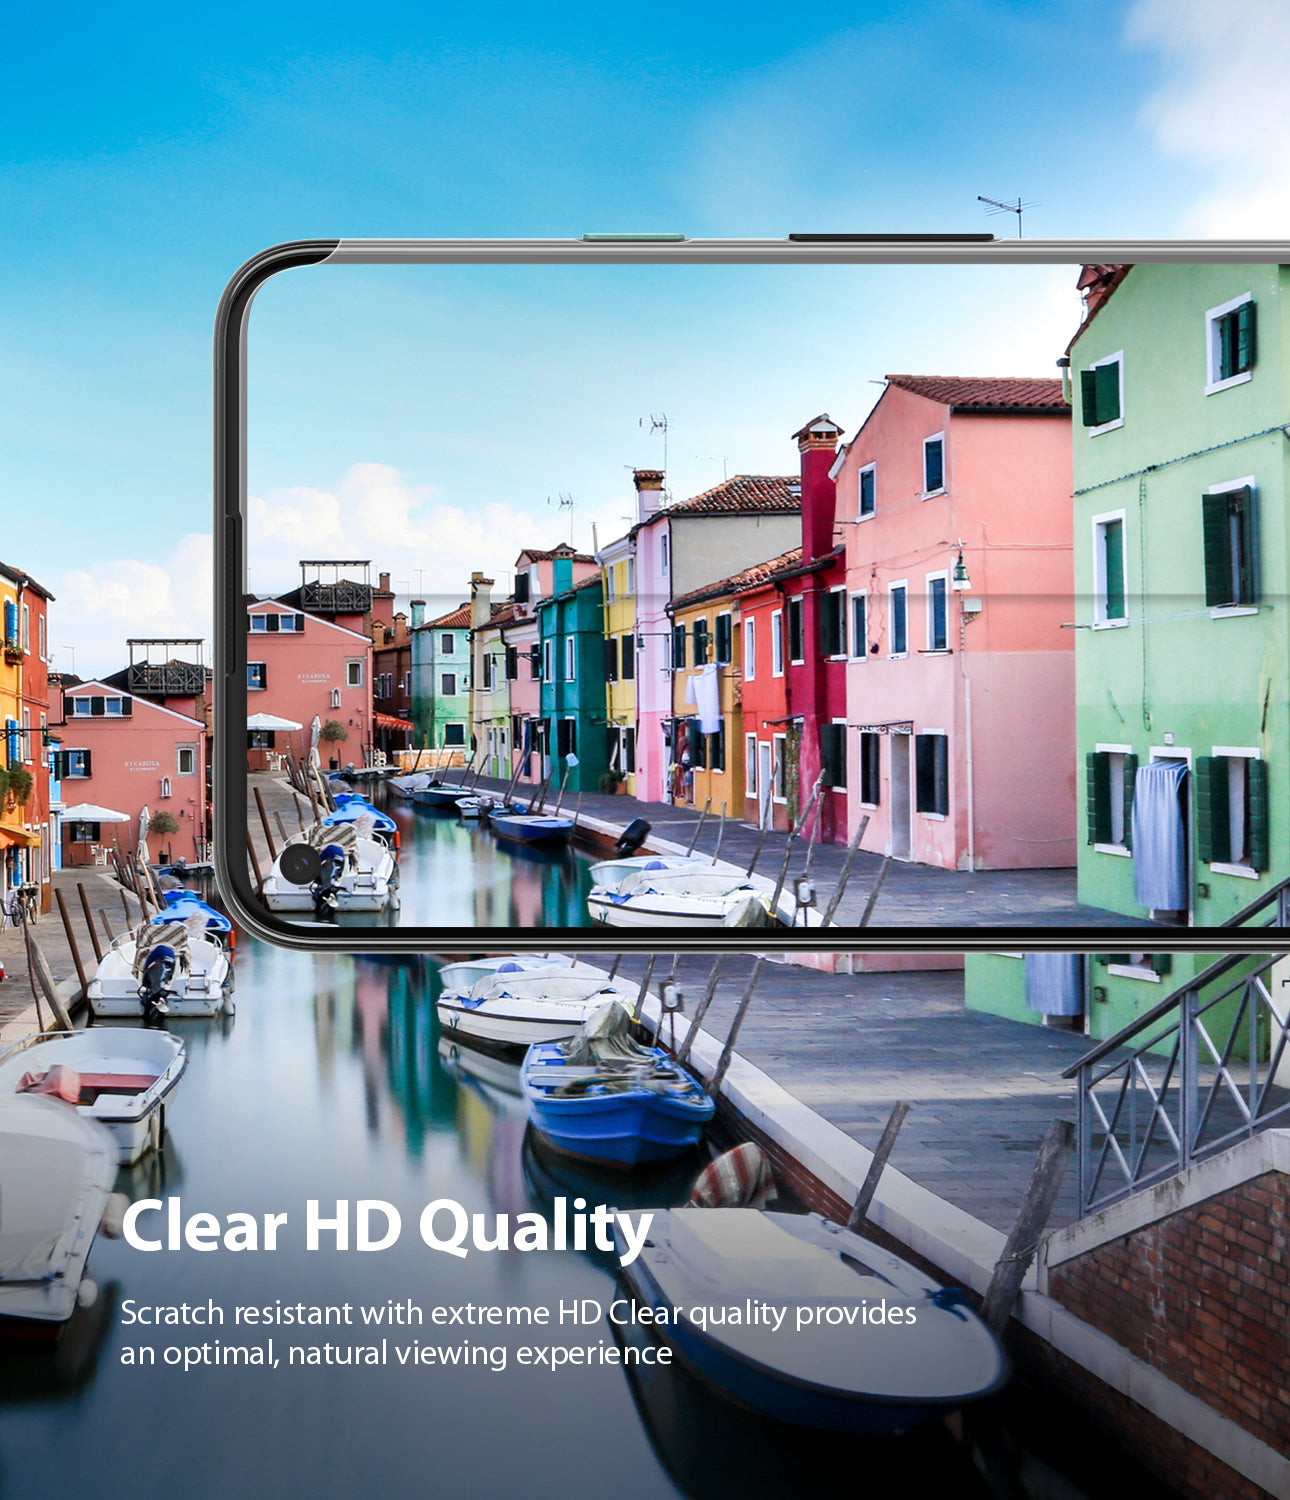 scratch resistant with extreme HD clear quality provides an optimal, natural viewing exprience